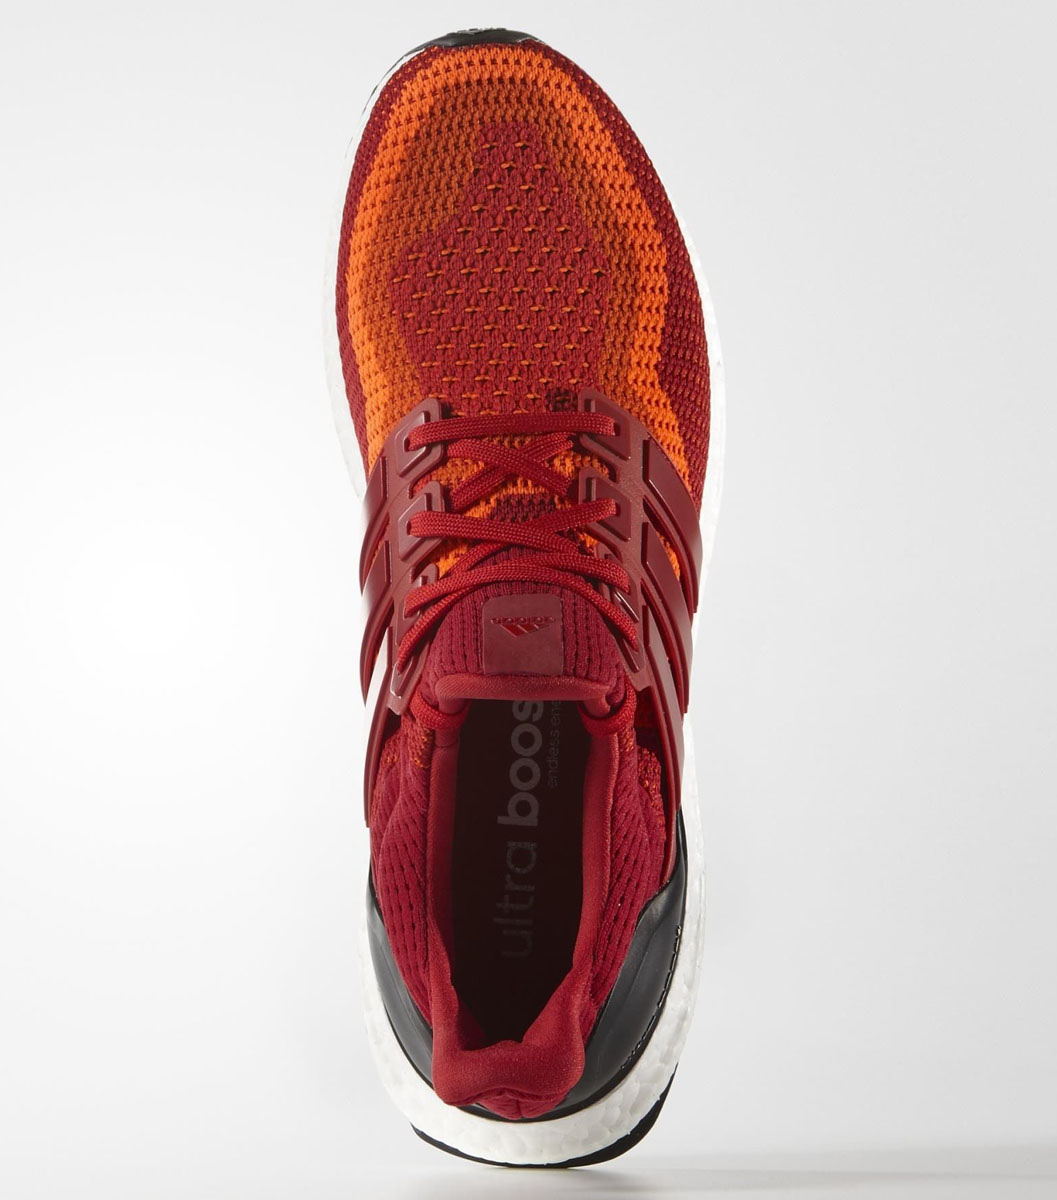 adidas-previews-new-colorways-of-the-ultra-boost-06